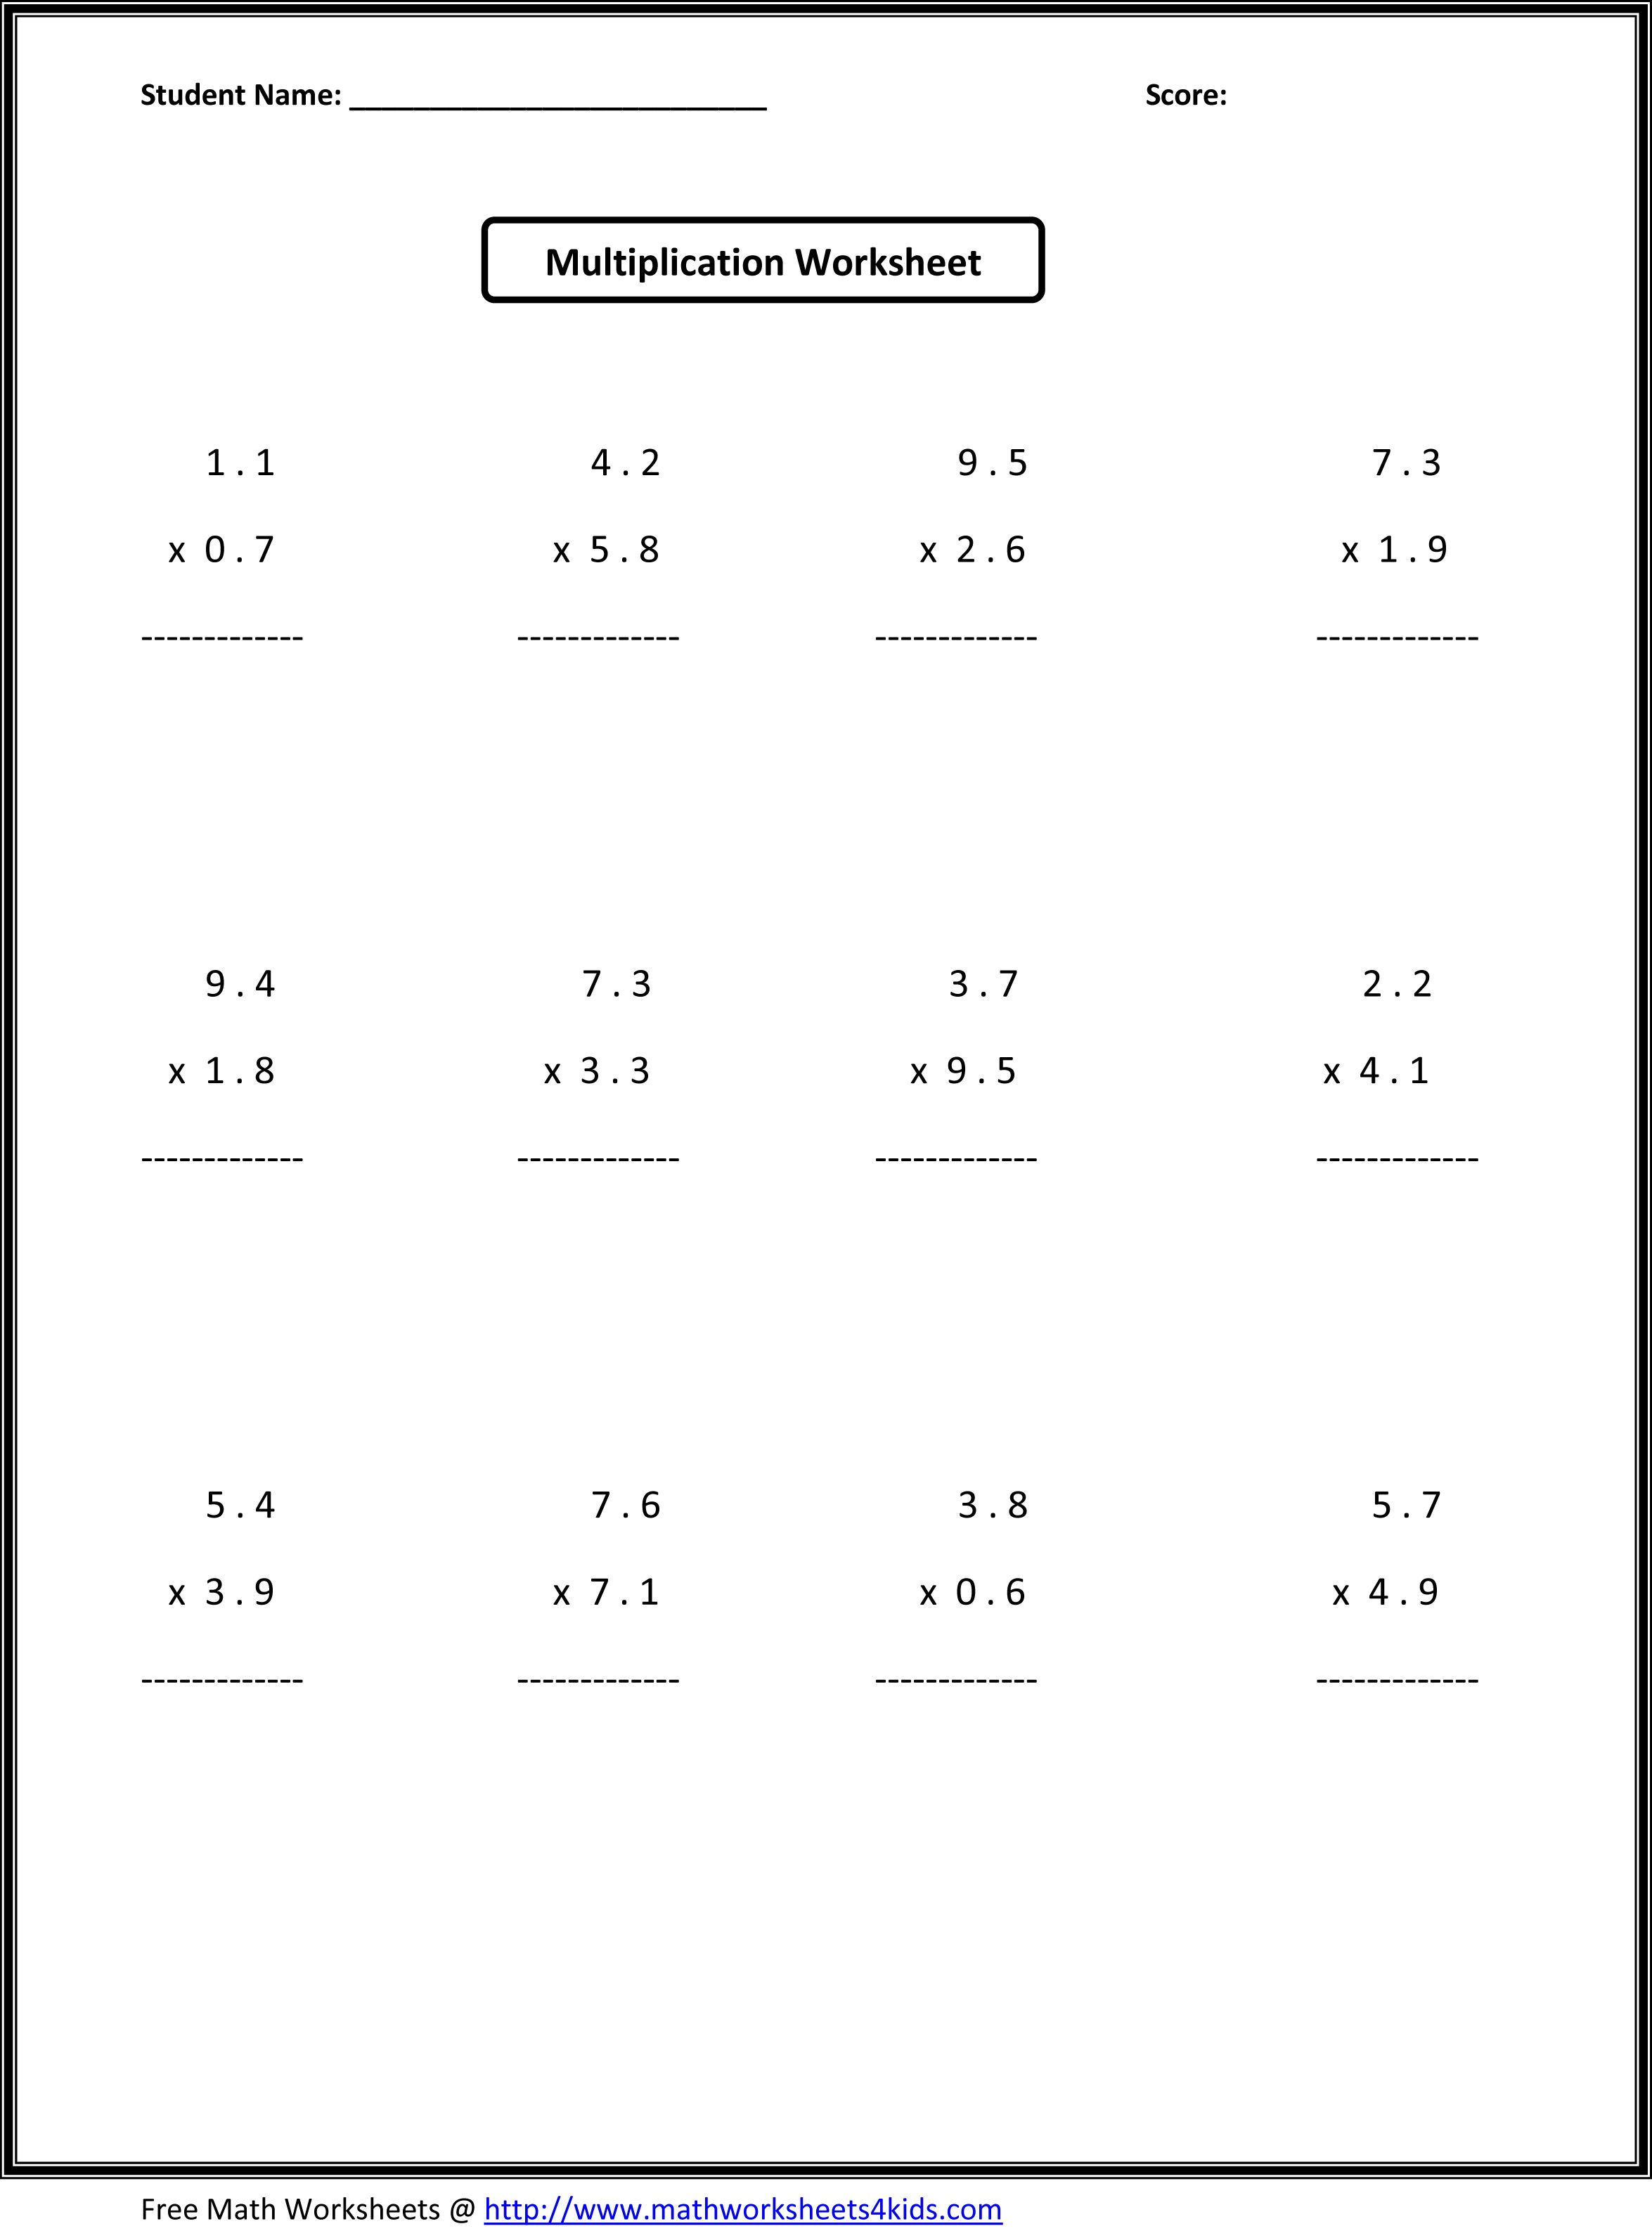 math worksheet : 6th grade printable math worksheets  jcarlospinto : Free Printable 6th Grade Math Worksheets